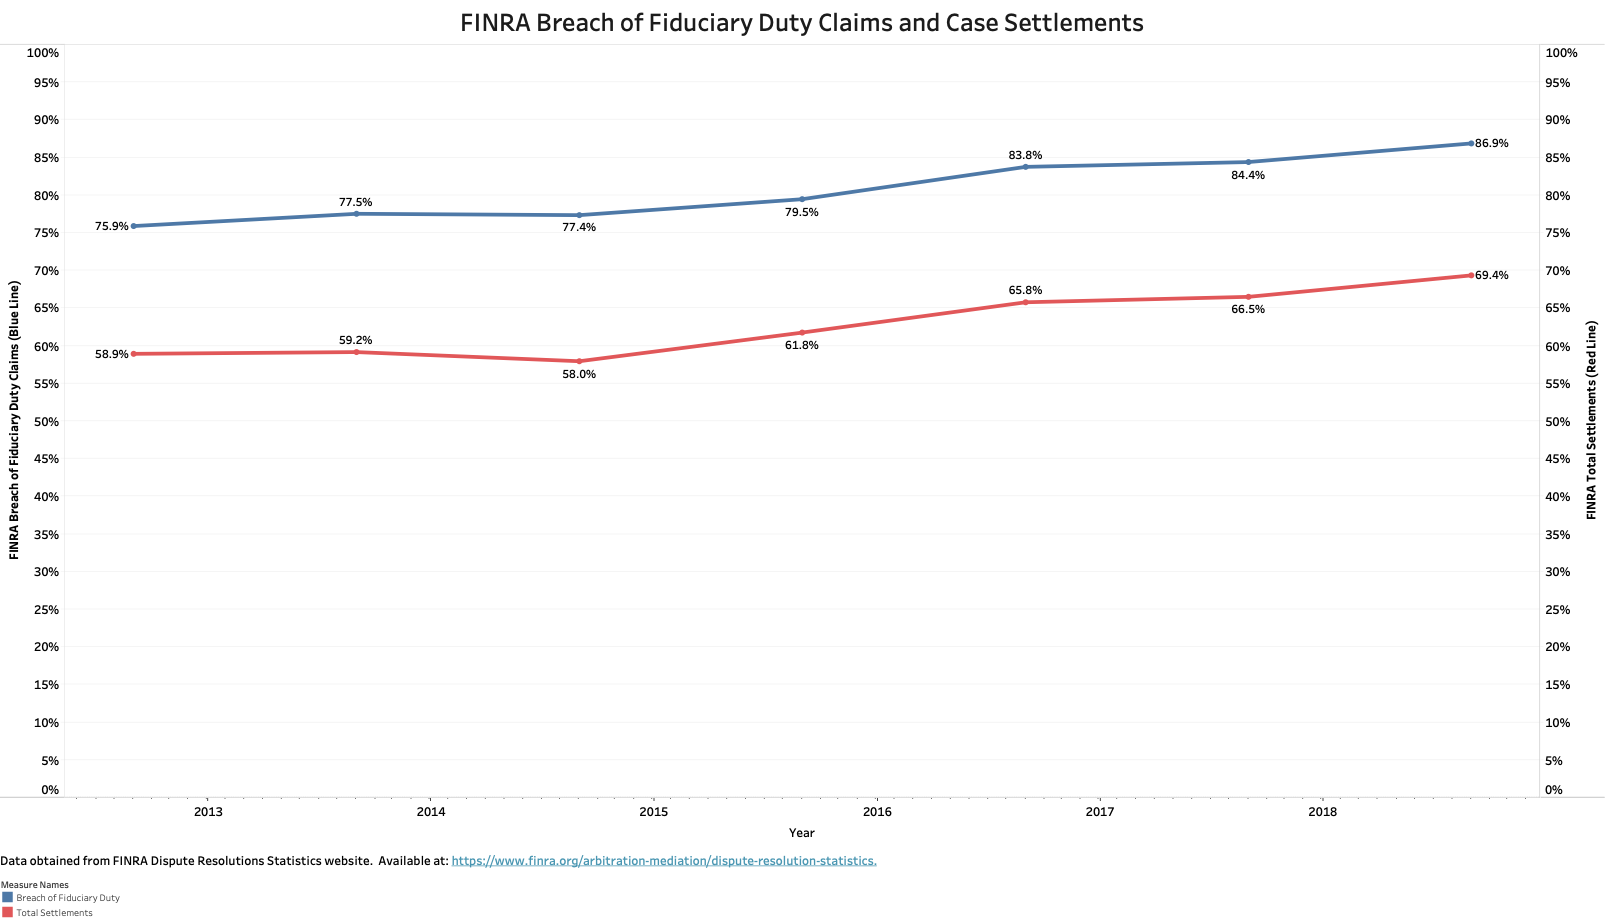 FINRA Breach of Fiduciary Duty claims and Case Settlements chart